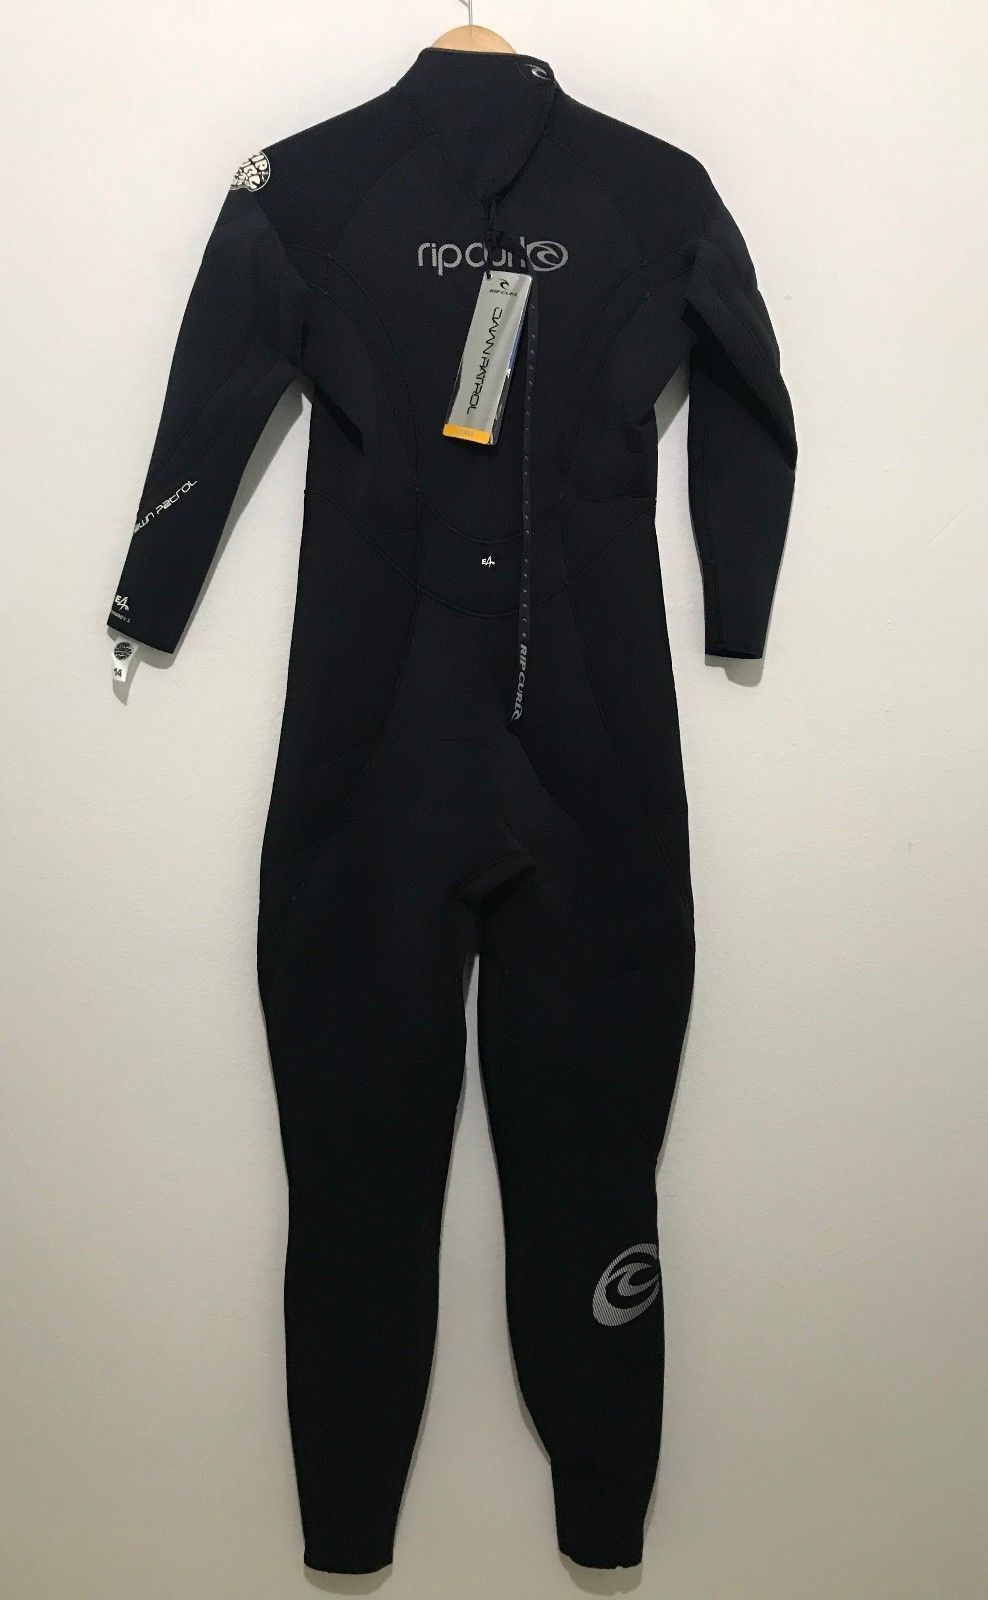 ... Rip Curl Womens Full Wetsuit E4 Sealed 4 3 NWT Ladies Size 14 - Flash  ... 3e8320556